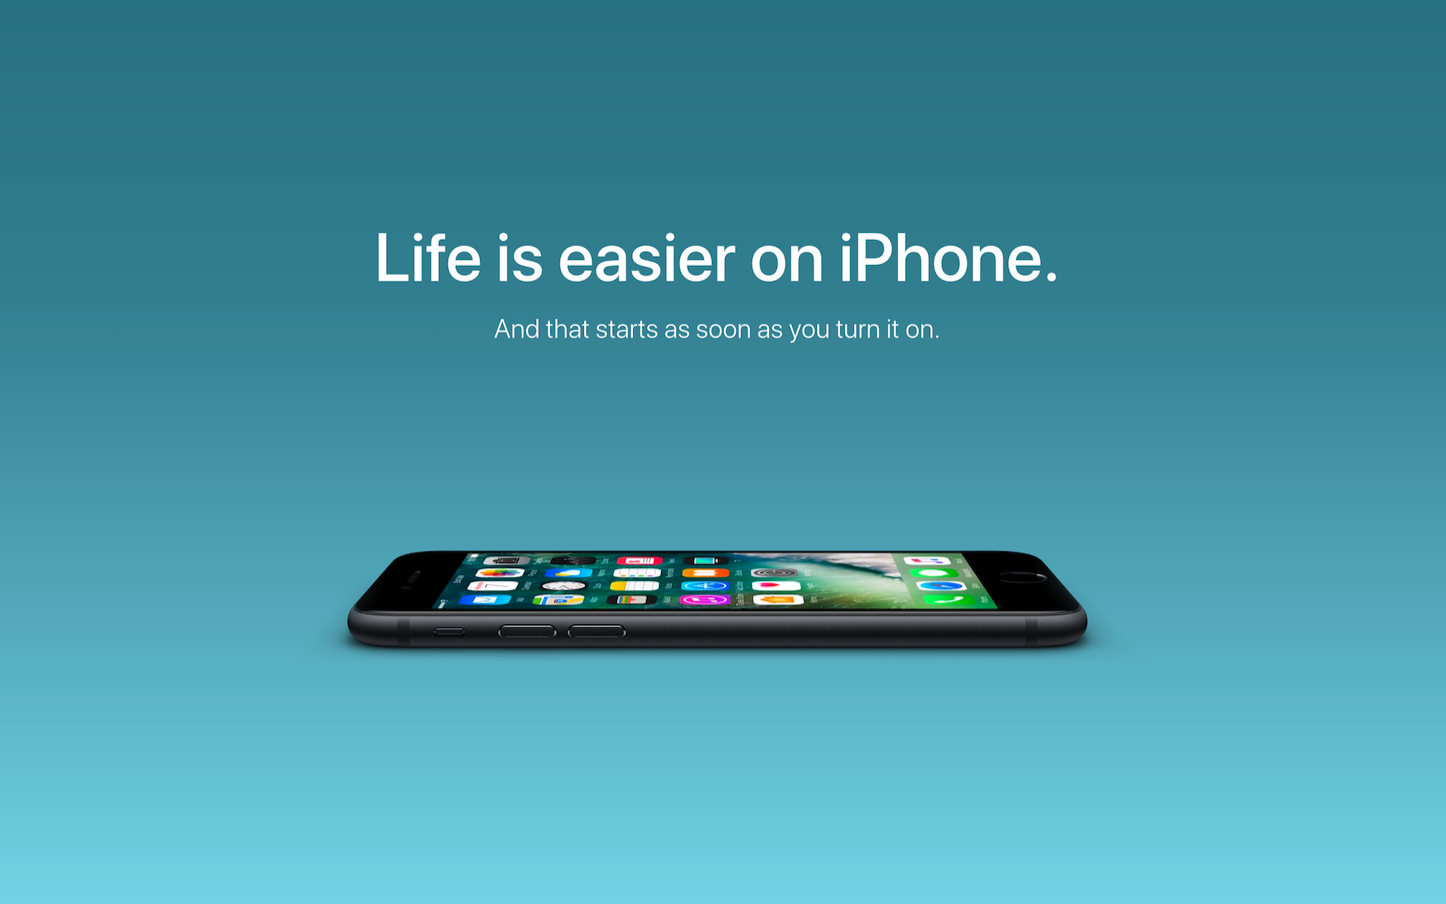 Life is Easier on iPhone